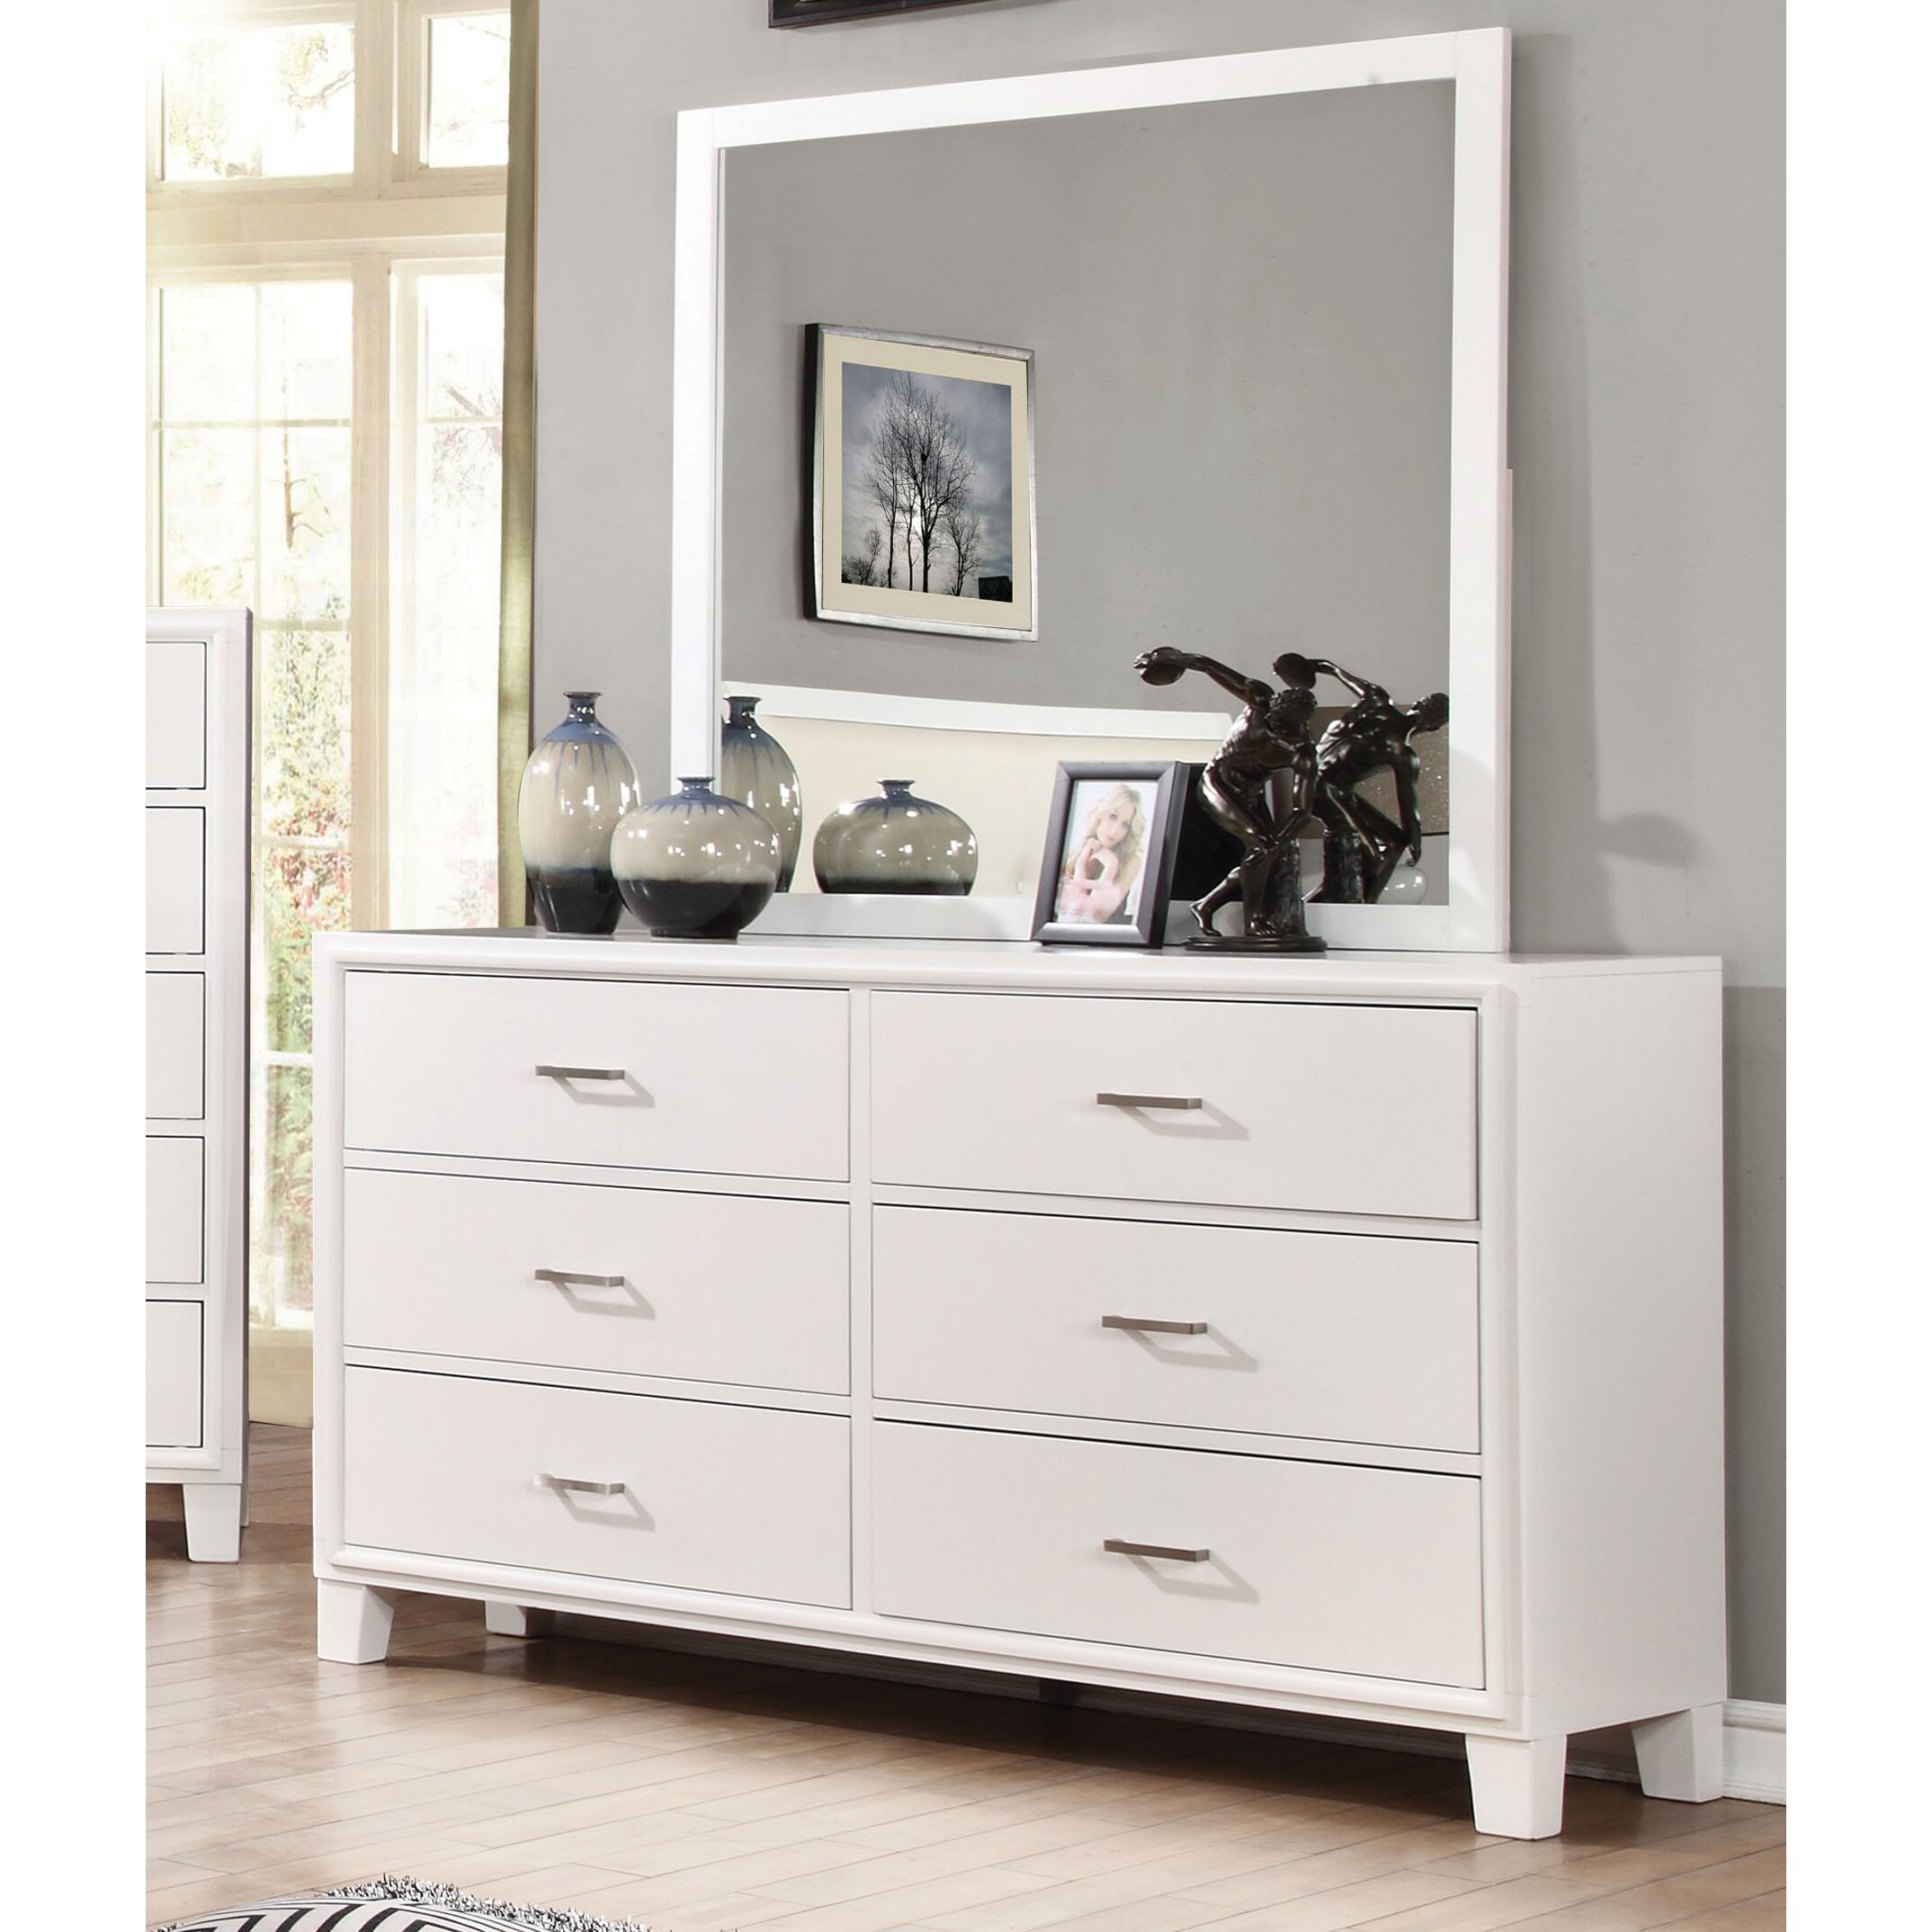 Hokku designs nina 6 drawer dresser with mirror reviews for Where can i find mirrors